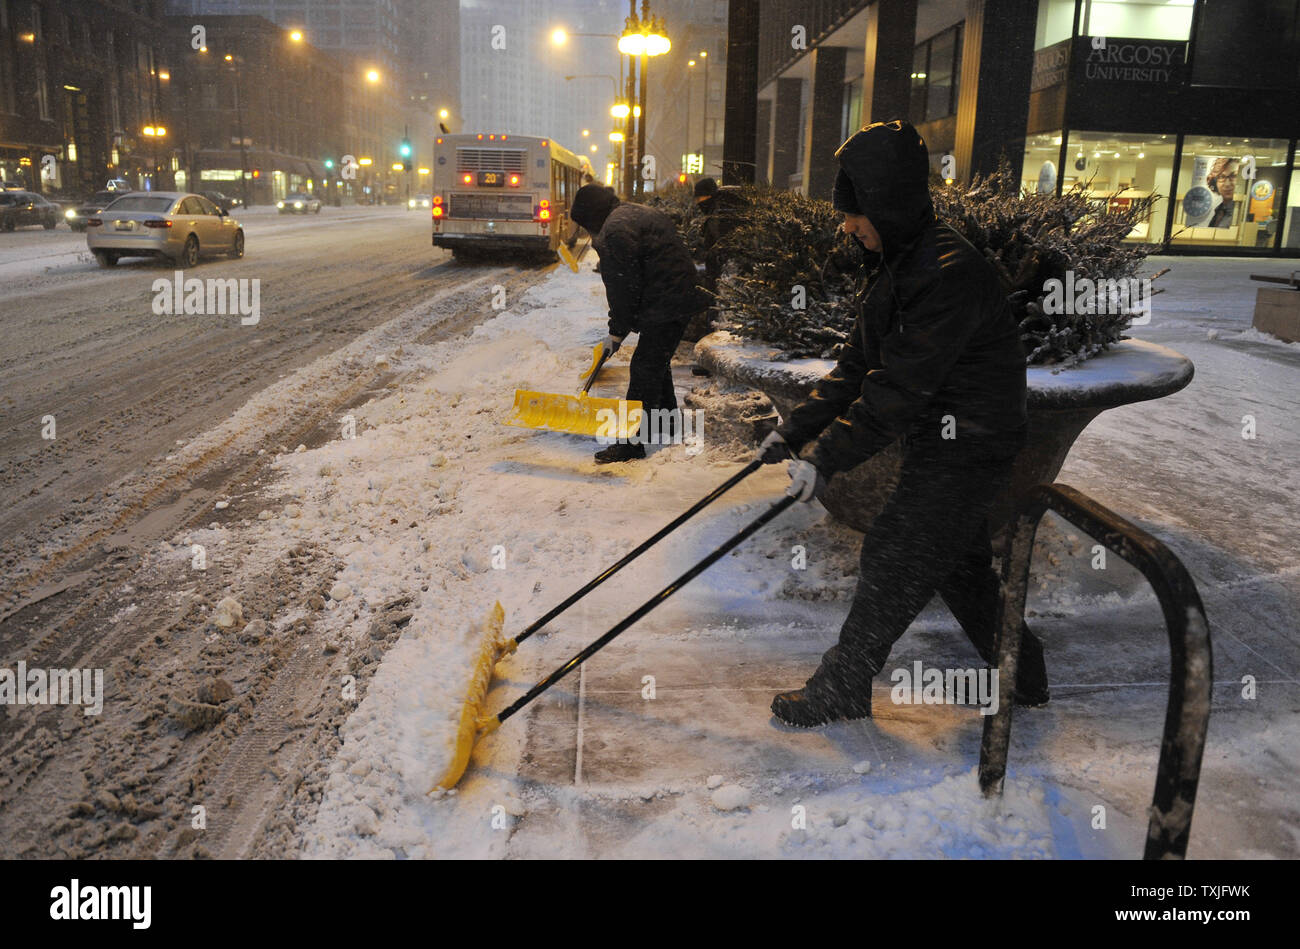 Workers shovel sidewalks as a major snow storm hits on February 1, 2011 in Chicago. Up to two feet of snow is expected to fall in the Chicago area as a winter storm created blizzard conditions from the southern Great Plains to the upper midwest on Tuesday.     UPI/Brian Kersey - Stock Image